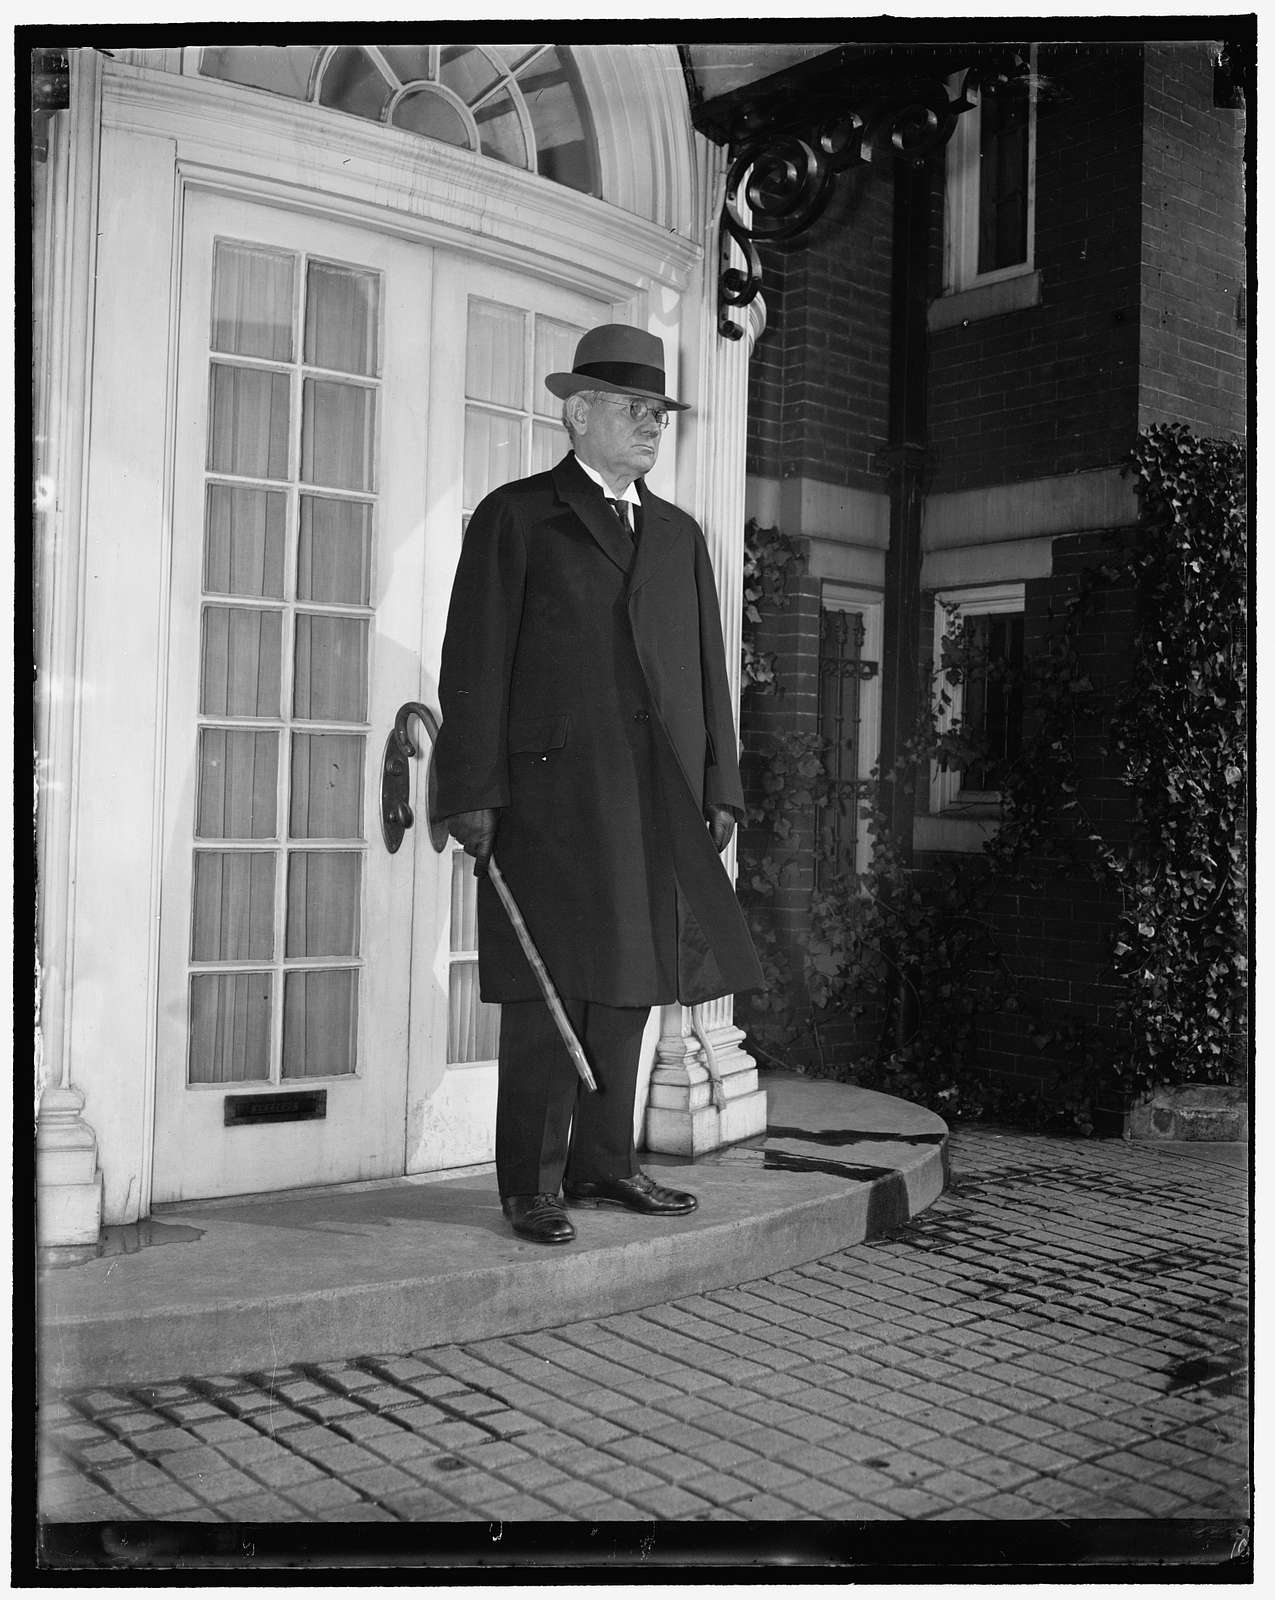 """""""71"""" on St. Patrick's Day. Washington, D.C., March 17. Justice Pierce Butler, 71 years old today celebrates his birthday by taking his morning walk, snapped while leaving his home on 19th St. altho the Supreme Court is in 2 weeks recess Justice Butler continues his work on Supreme Court cases at home.."""